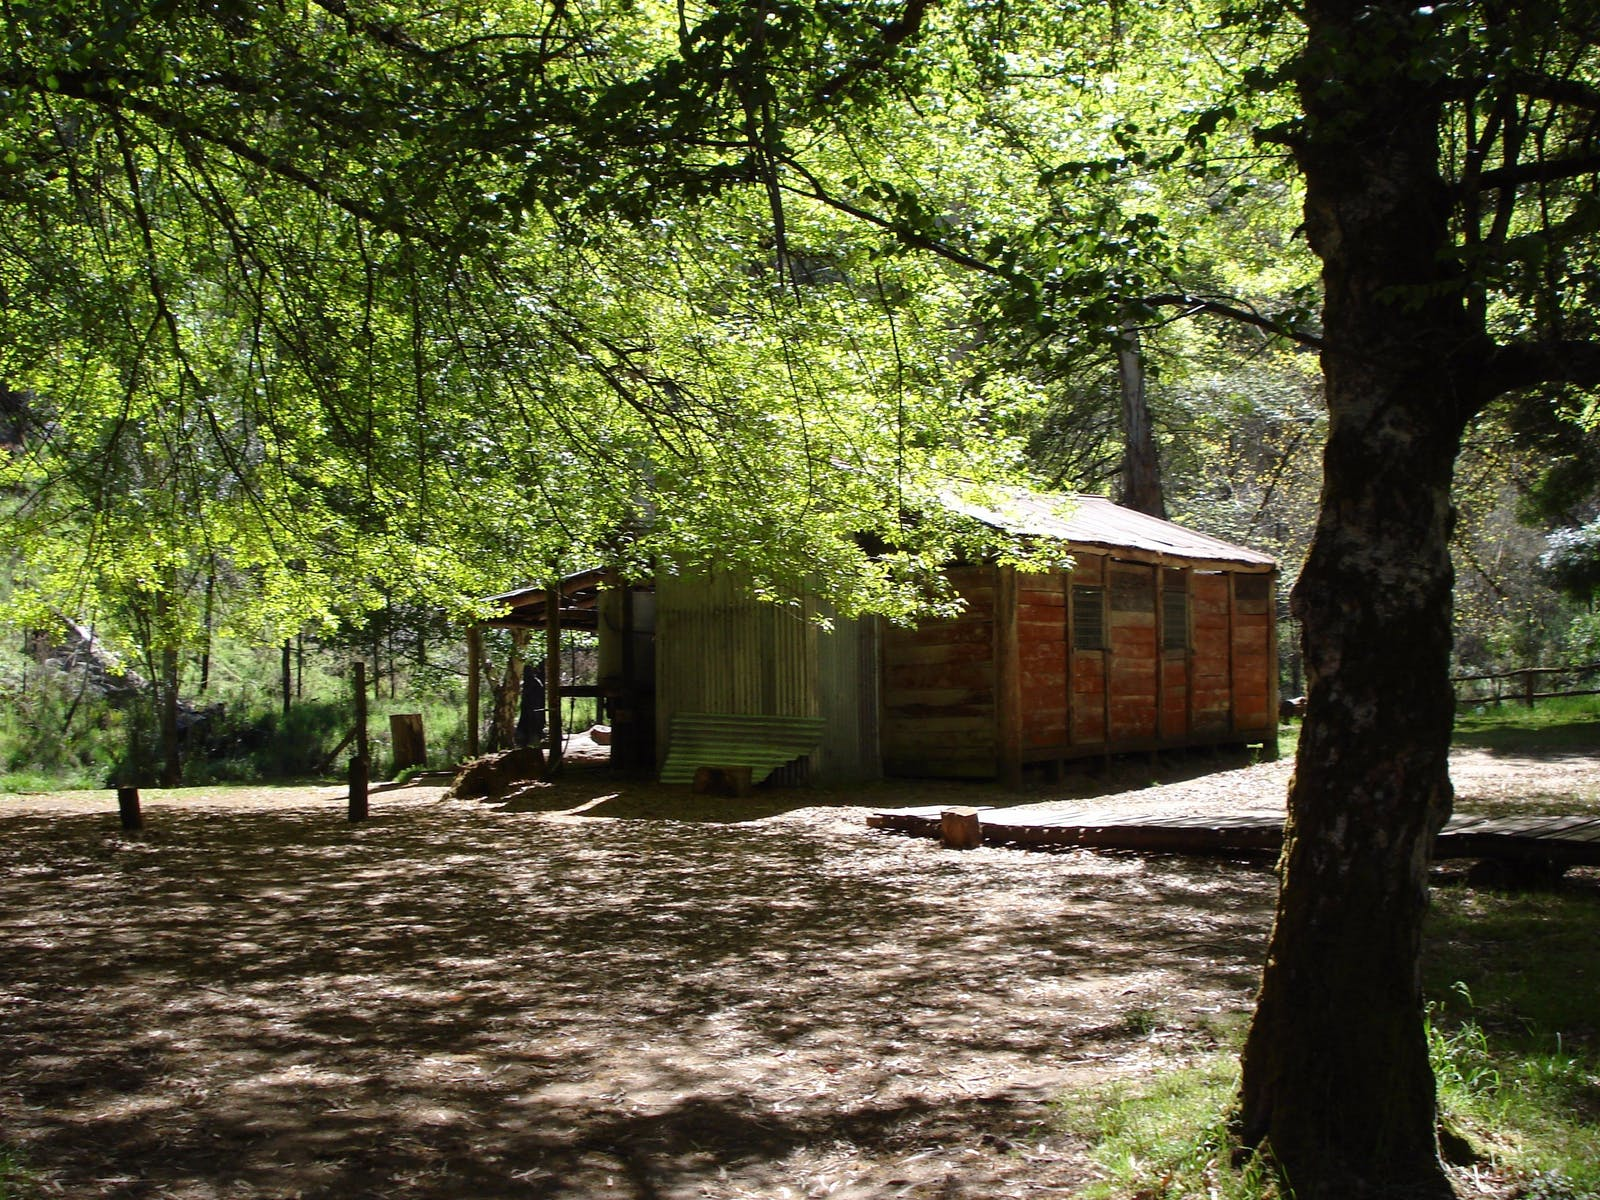 Pickering's Hut and Camping Area